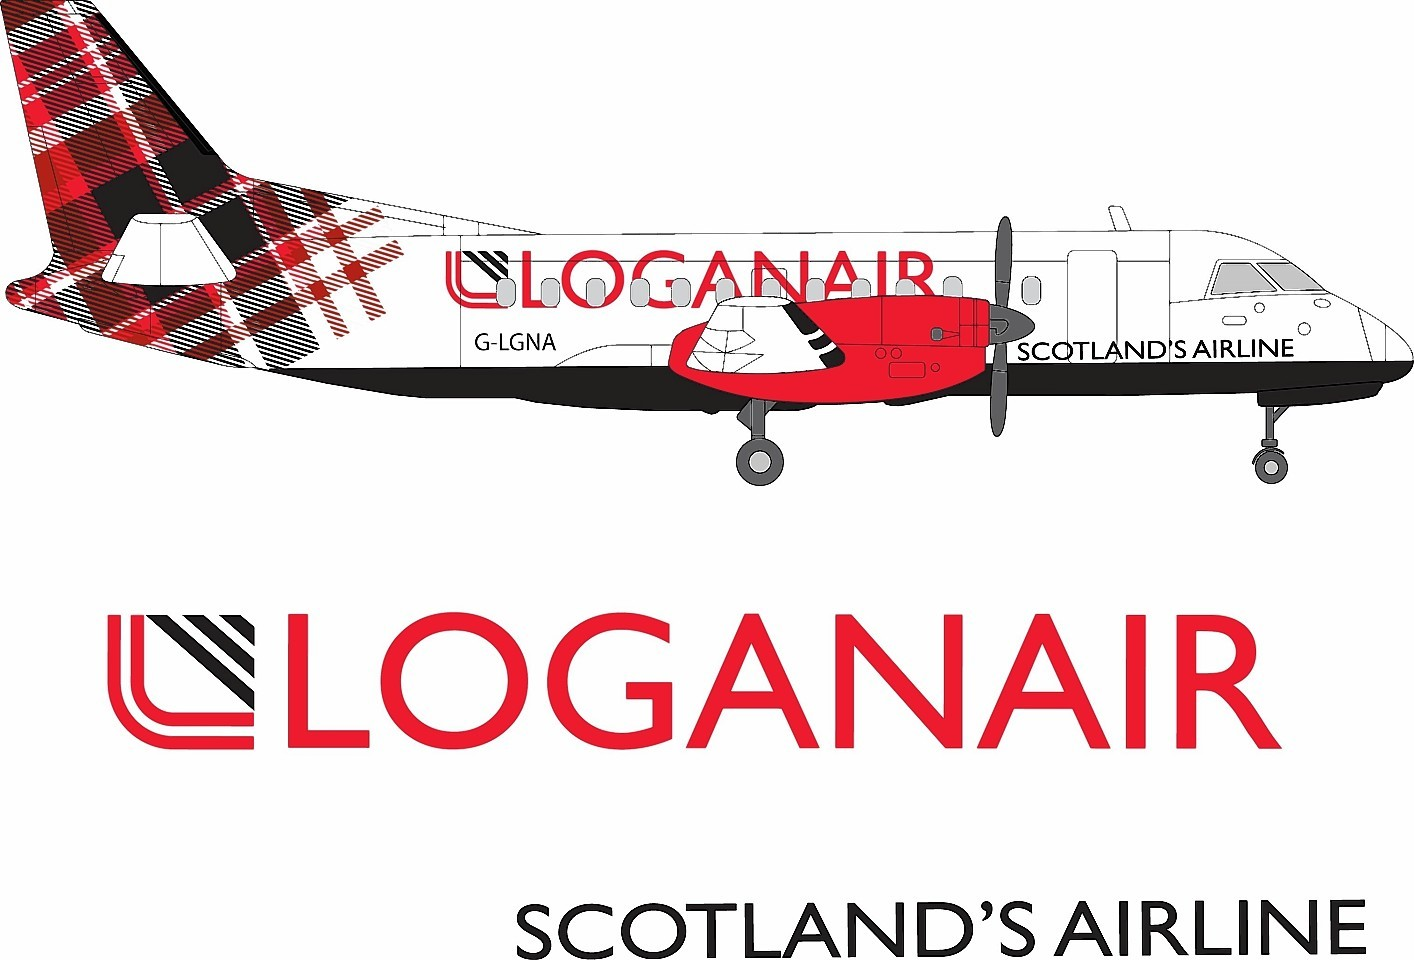 LoganAir apologised for the inconvenience of passengers.